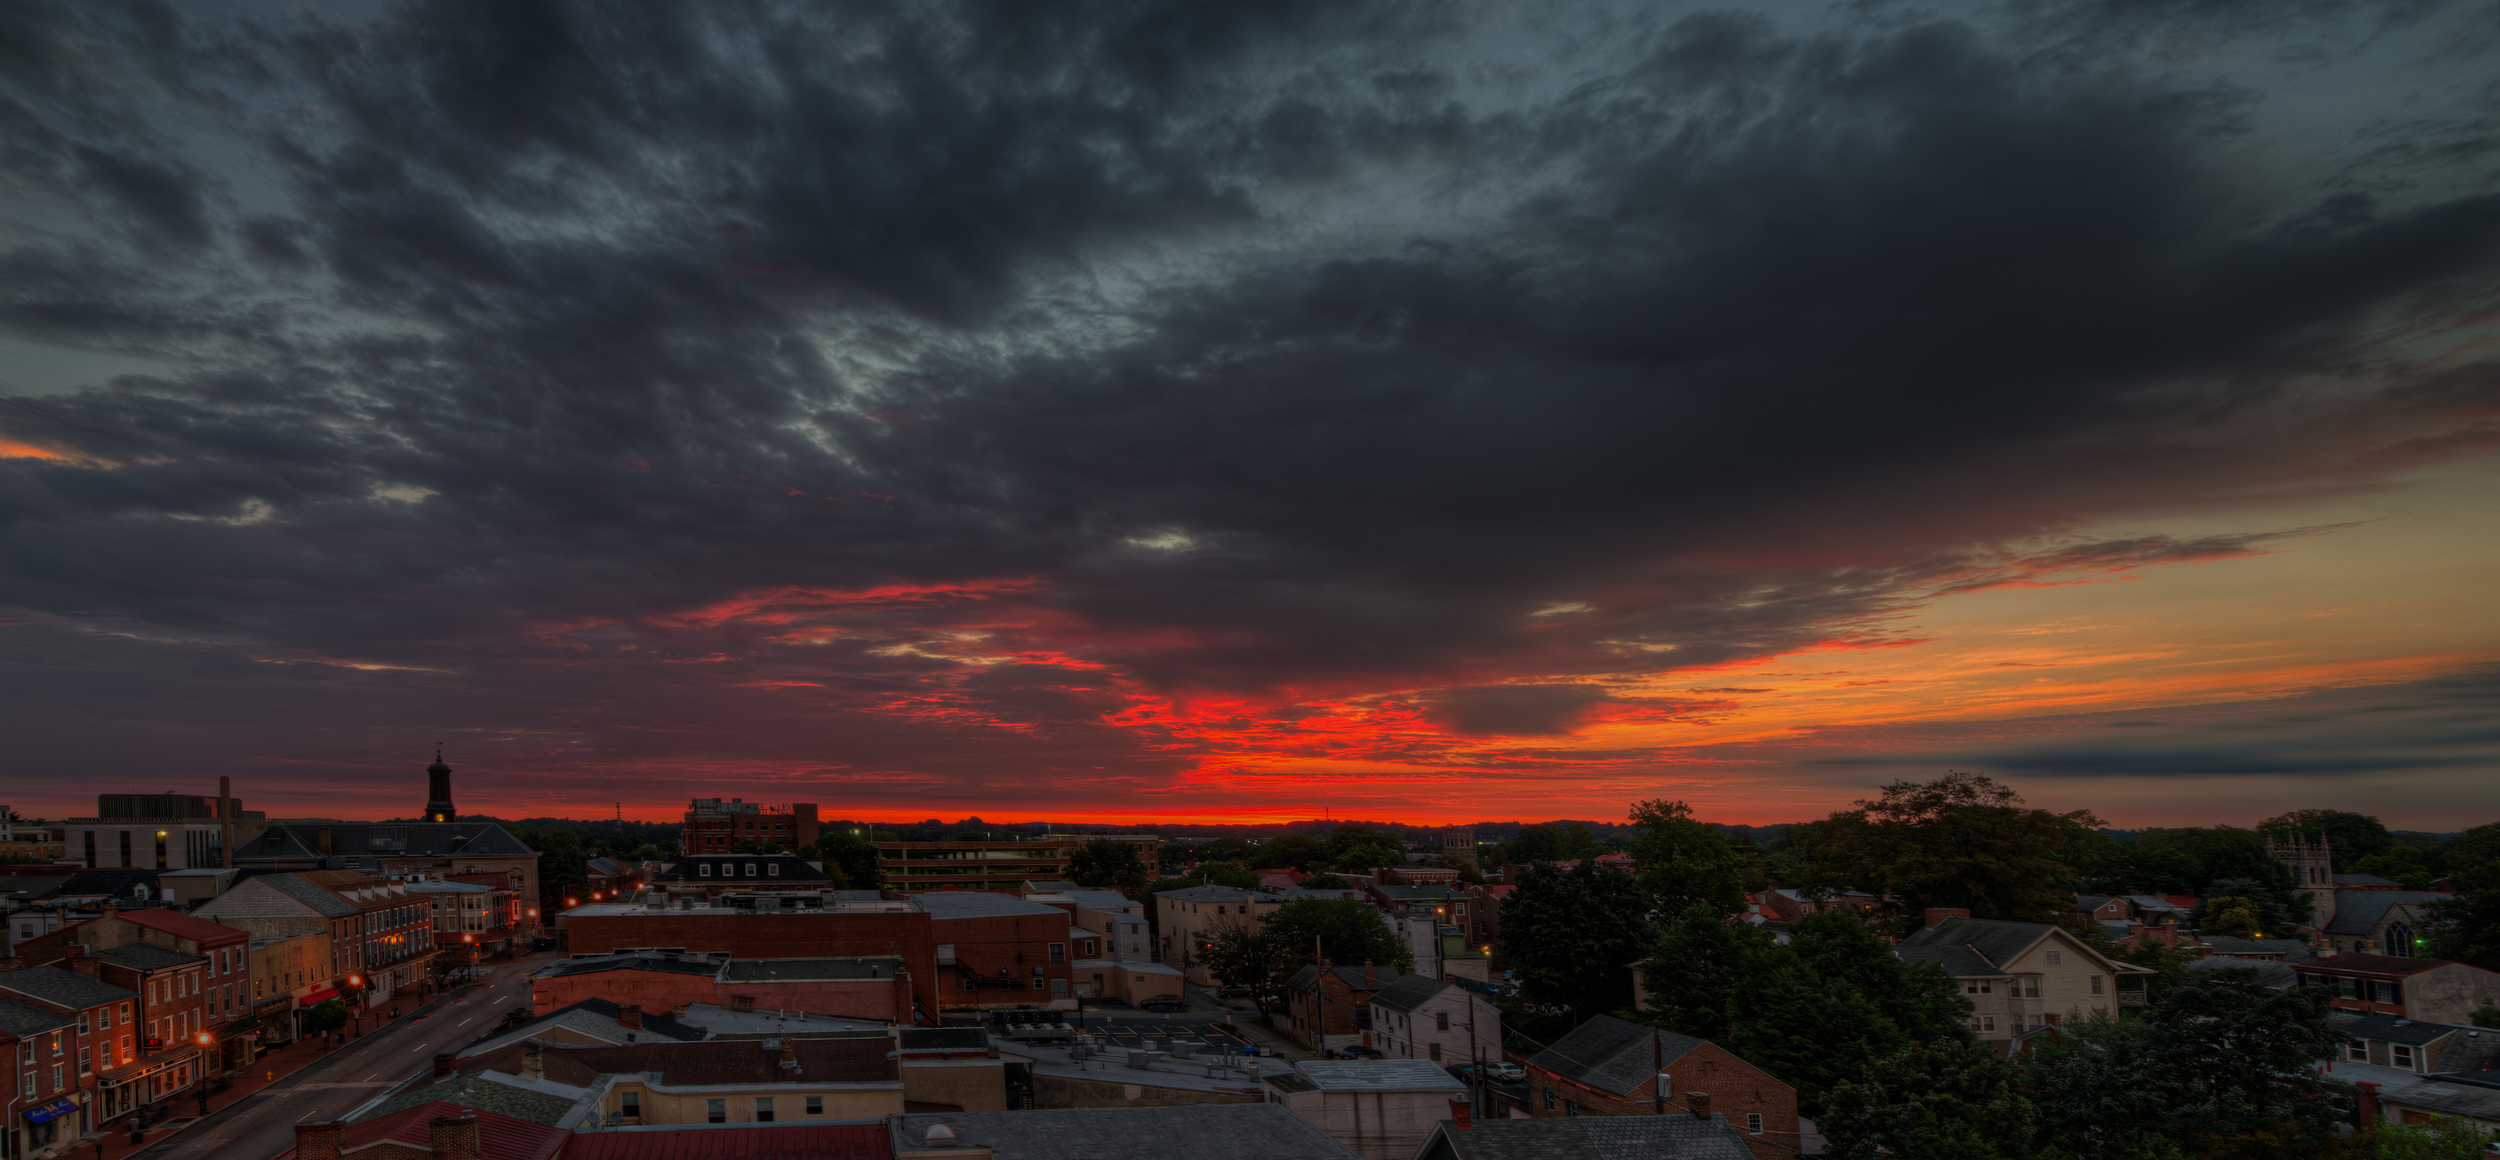 Sunrise over West Chester PA